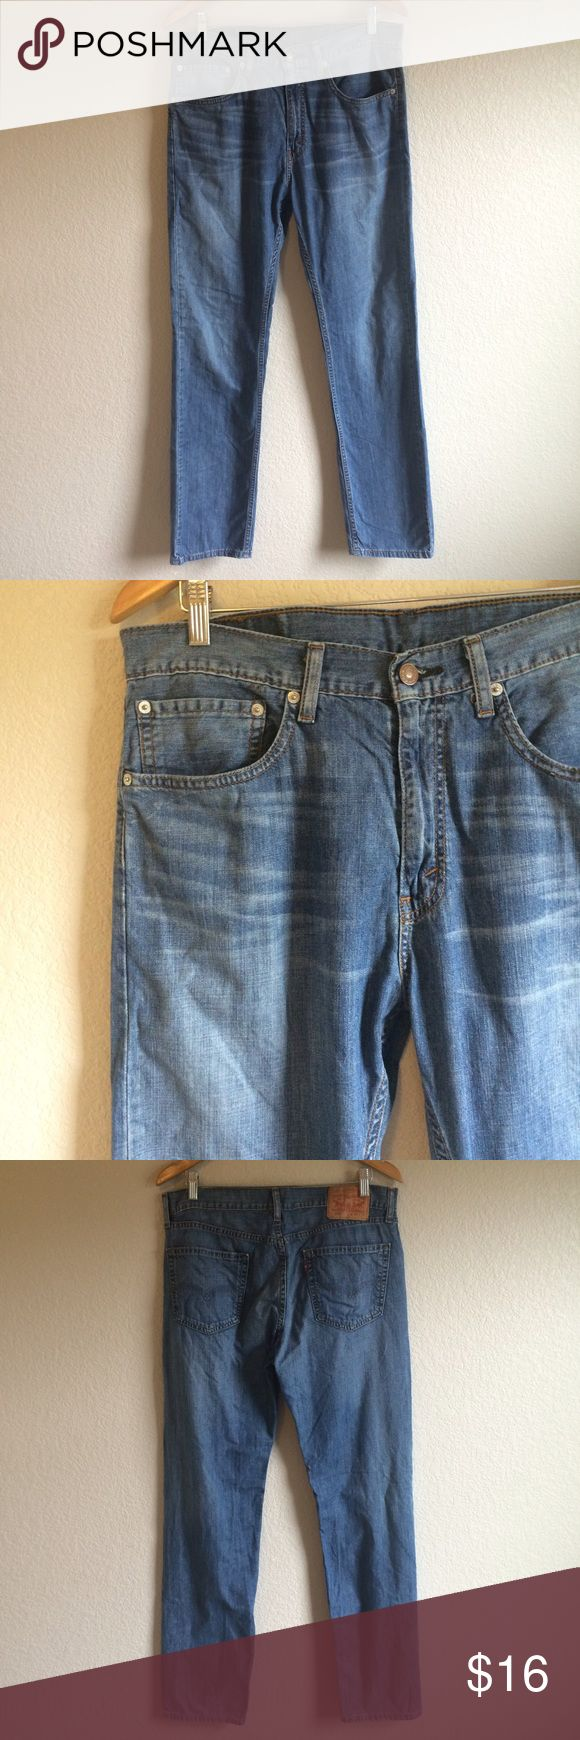 Levis 505 Jeans These light wash Levi's 505 jeans are in gently used condition. 34x34. Levi's Jeans